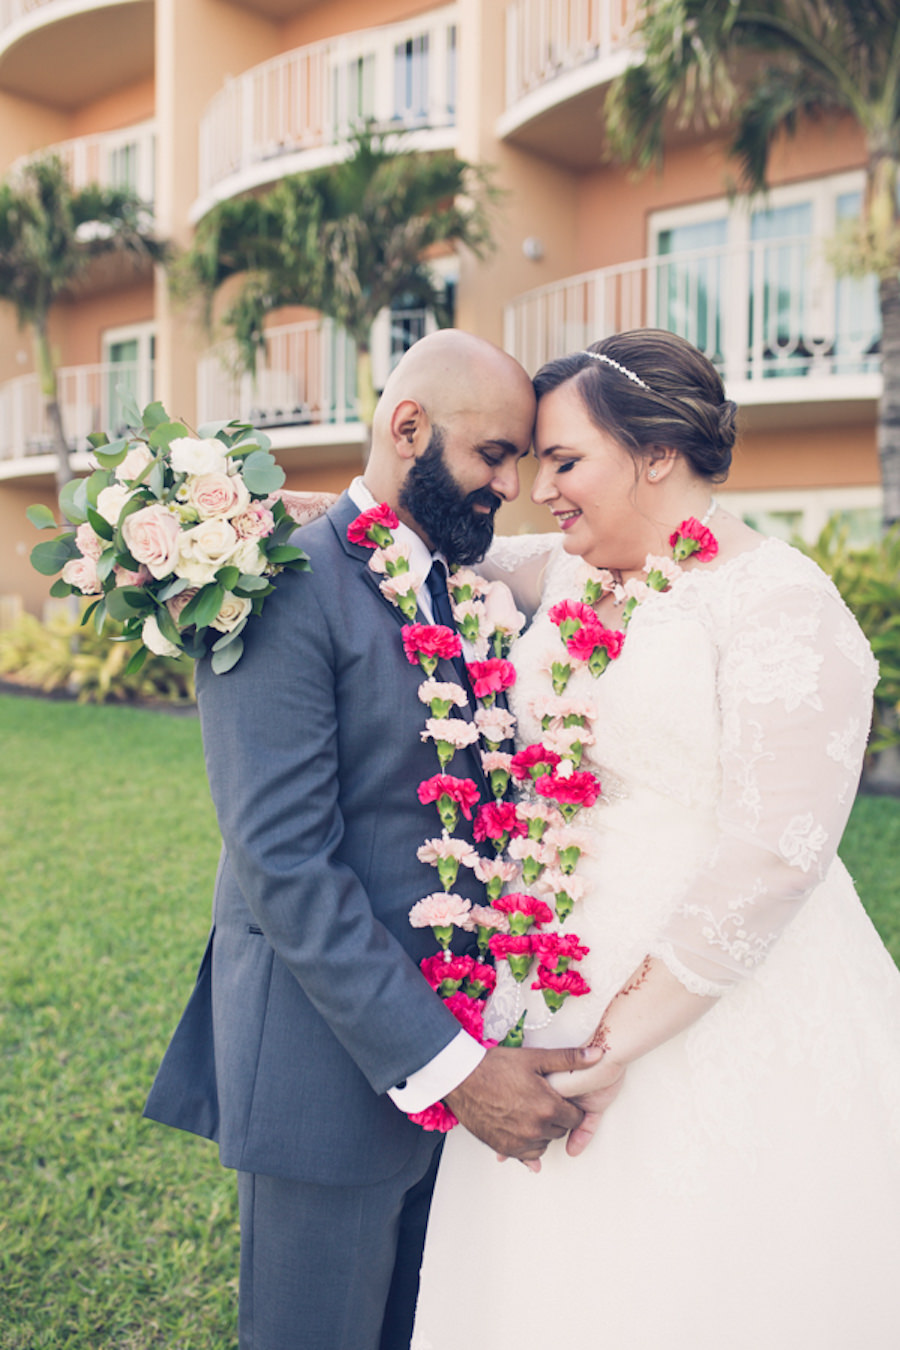 Outdoor Bride and Groom Intimate Wedding Portrait Wearing Pink Floral Leis | Tampa Bay Wedding Photographer Luxe Light Photography